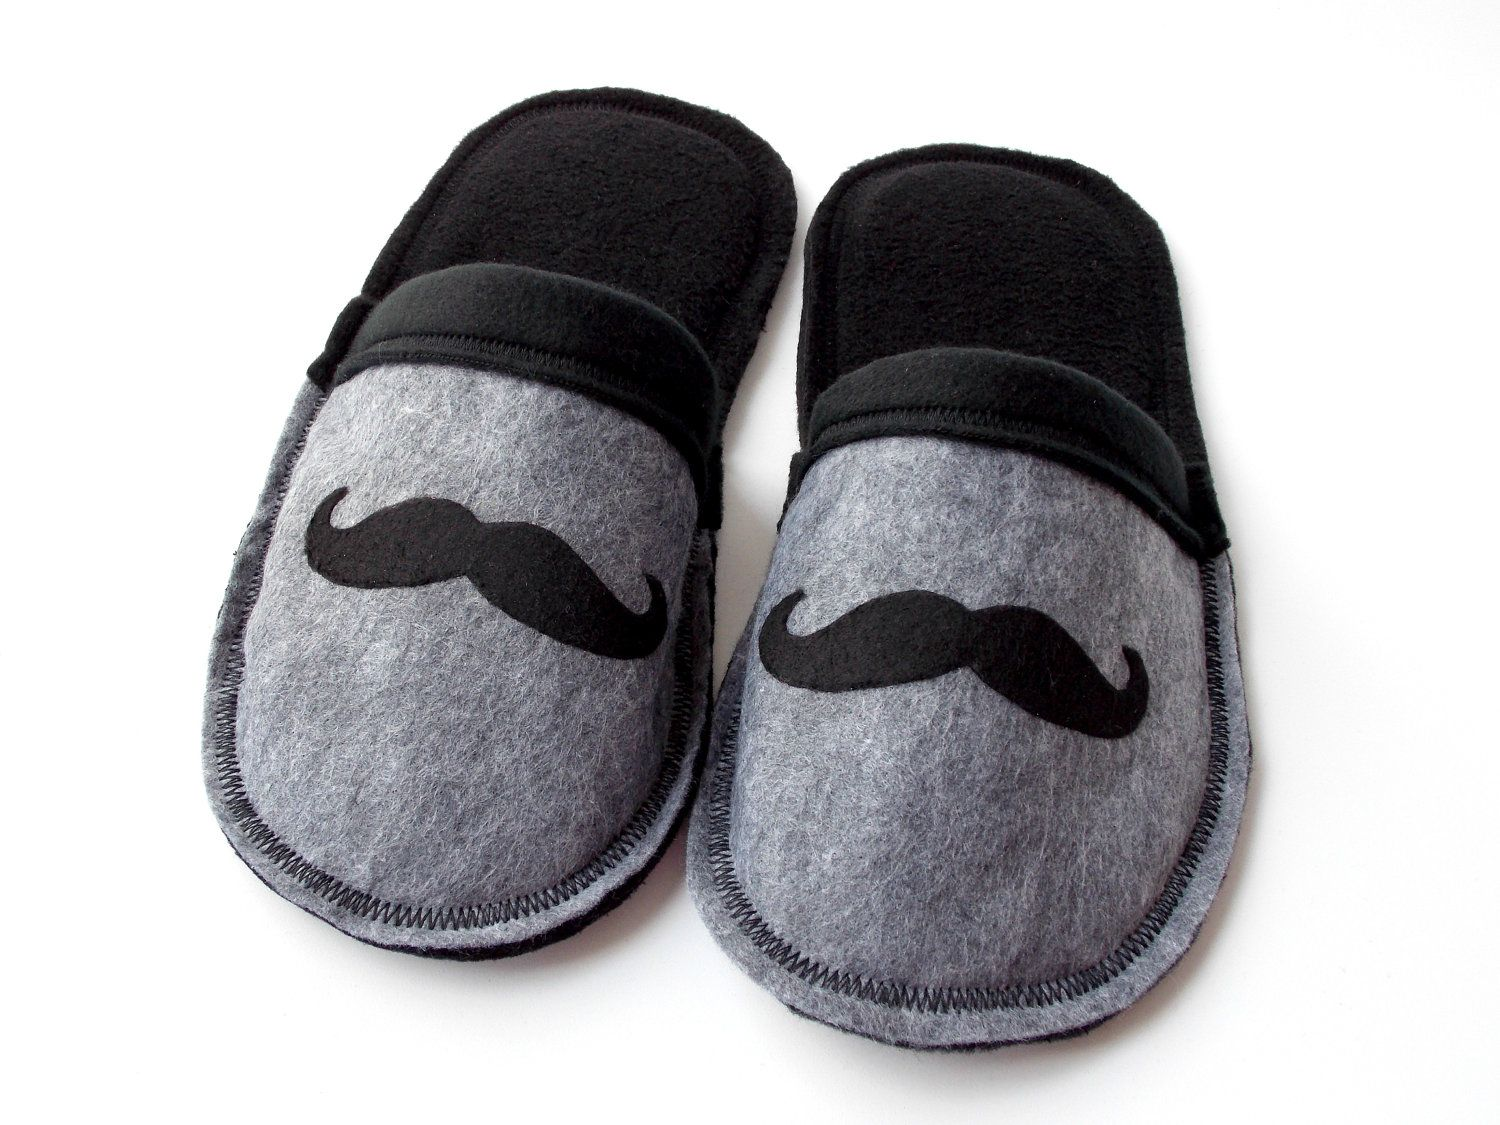 Boys Mustache Slippers Childrens Clothing Black Grey Gray Fleece ...